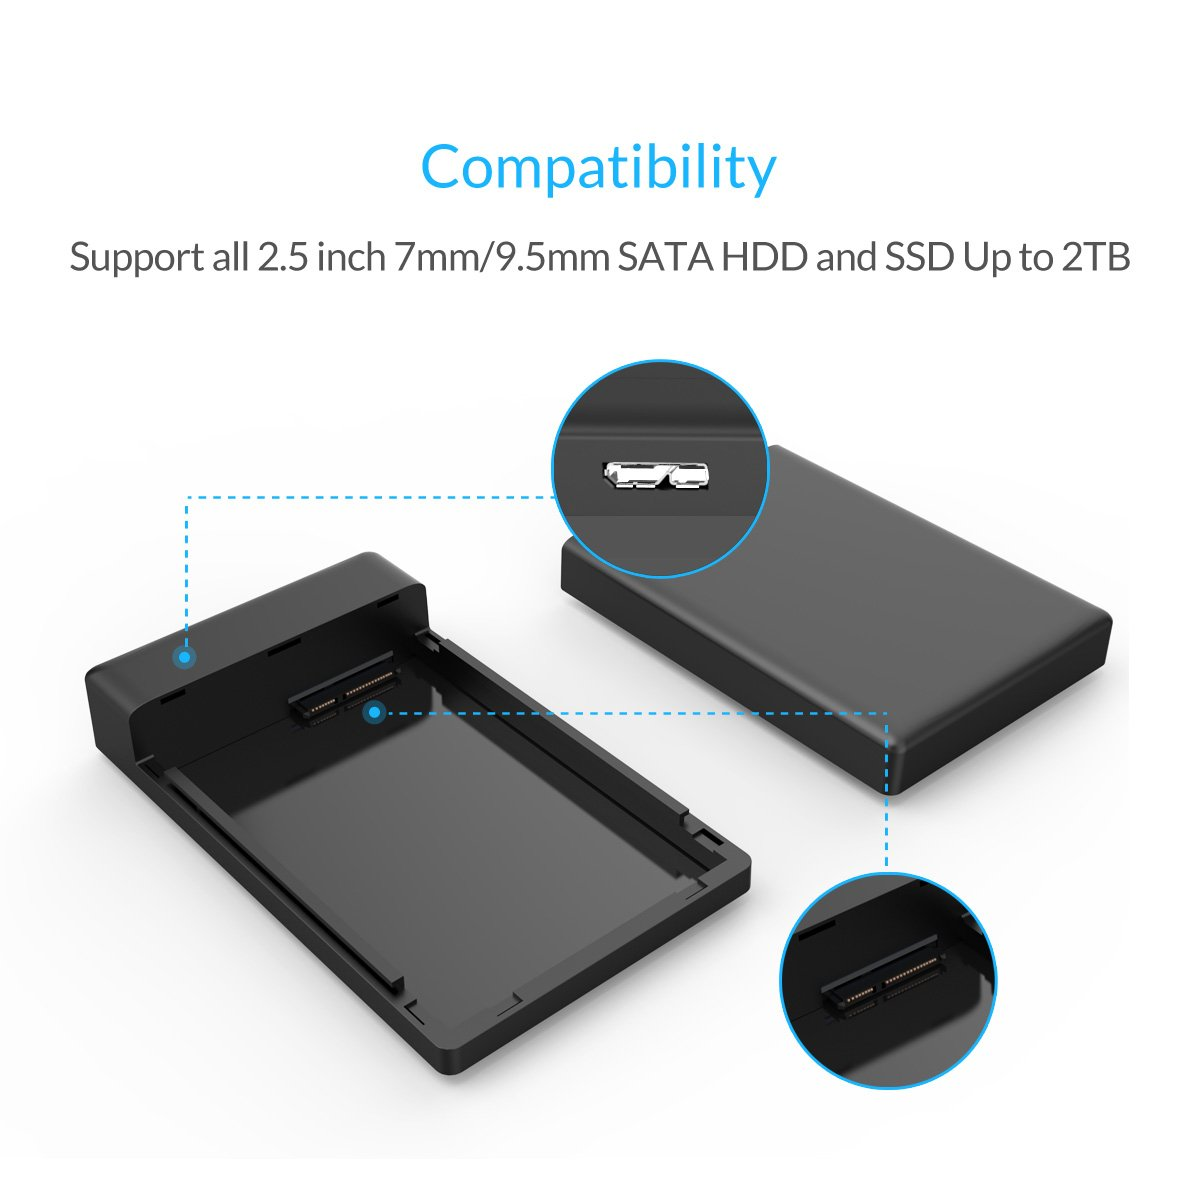 Orico 25 Usb30 Sata External Hard Drive Enclosure For 95mm 7mm Inch Hdd And Ssd Tool Free Uasp Supported Black Case Disk Samsung F2 Portable Usb 30 Computers